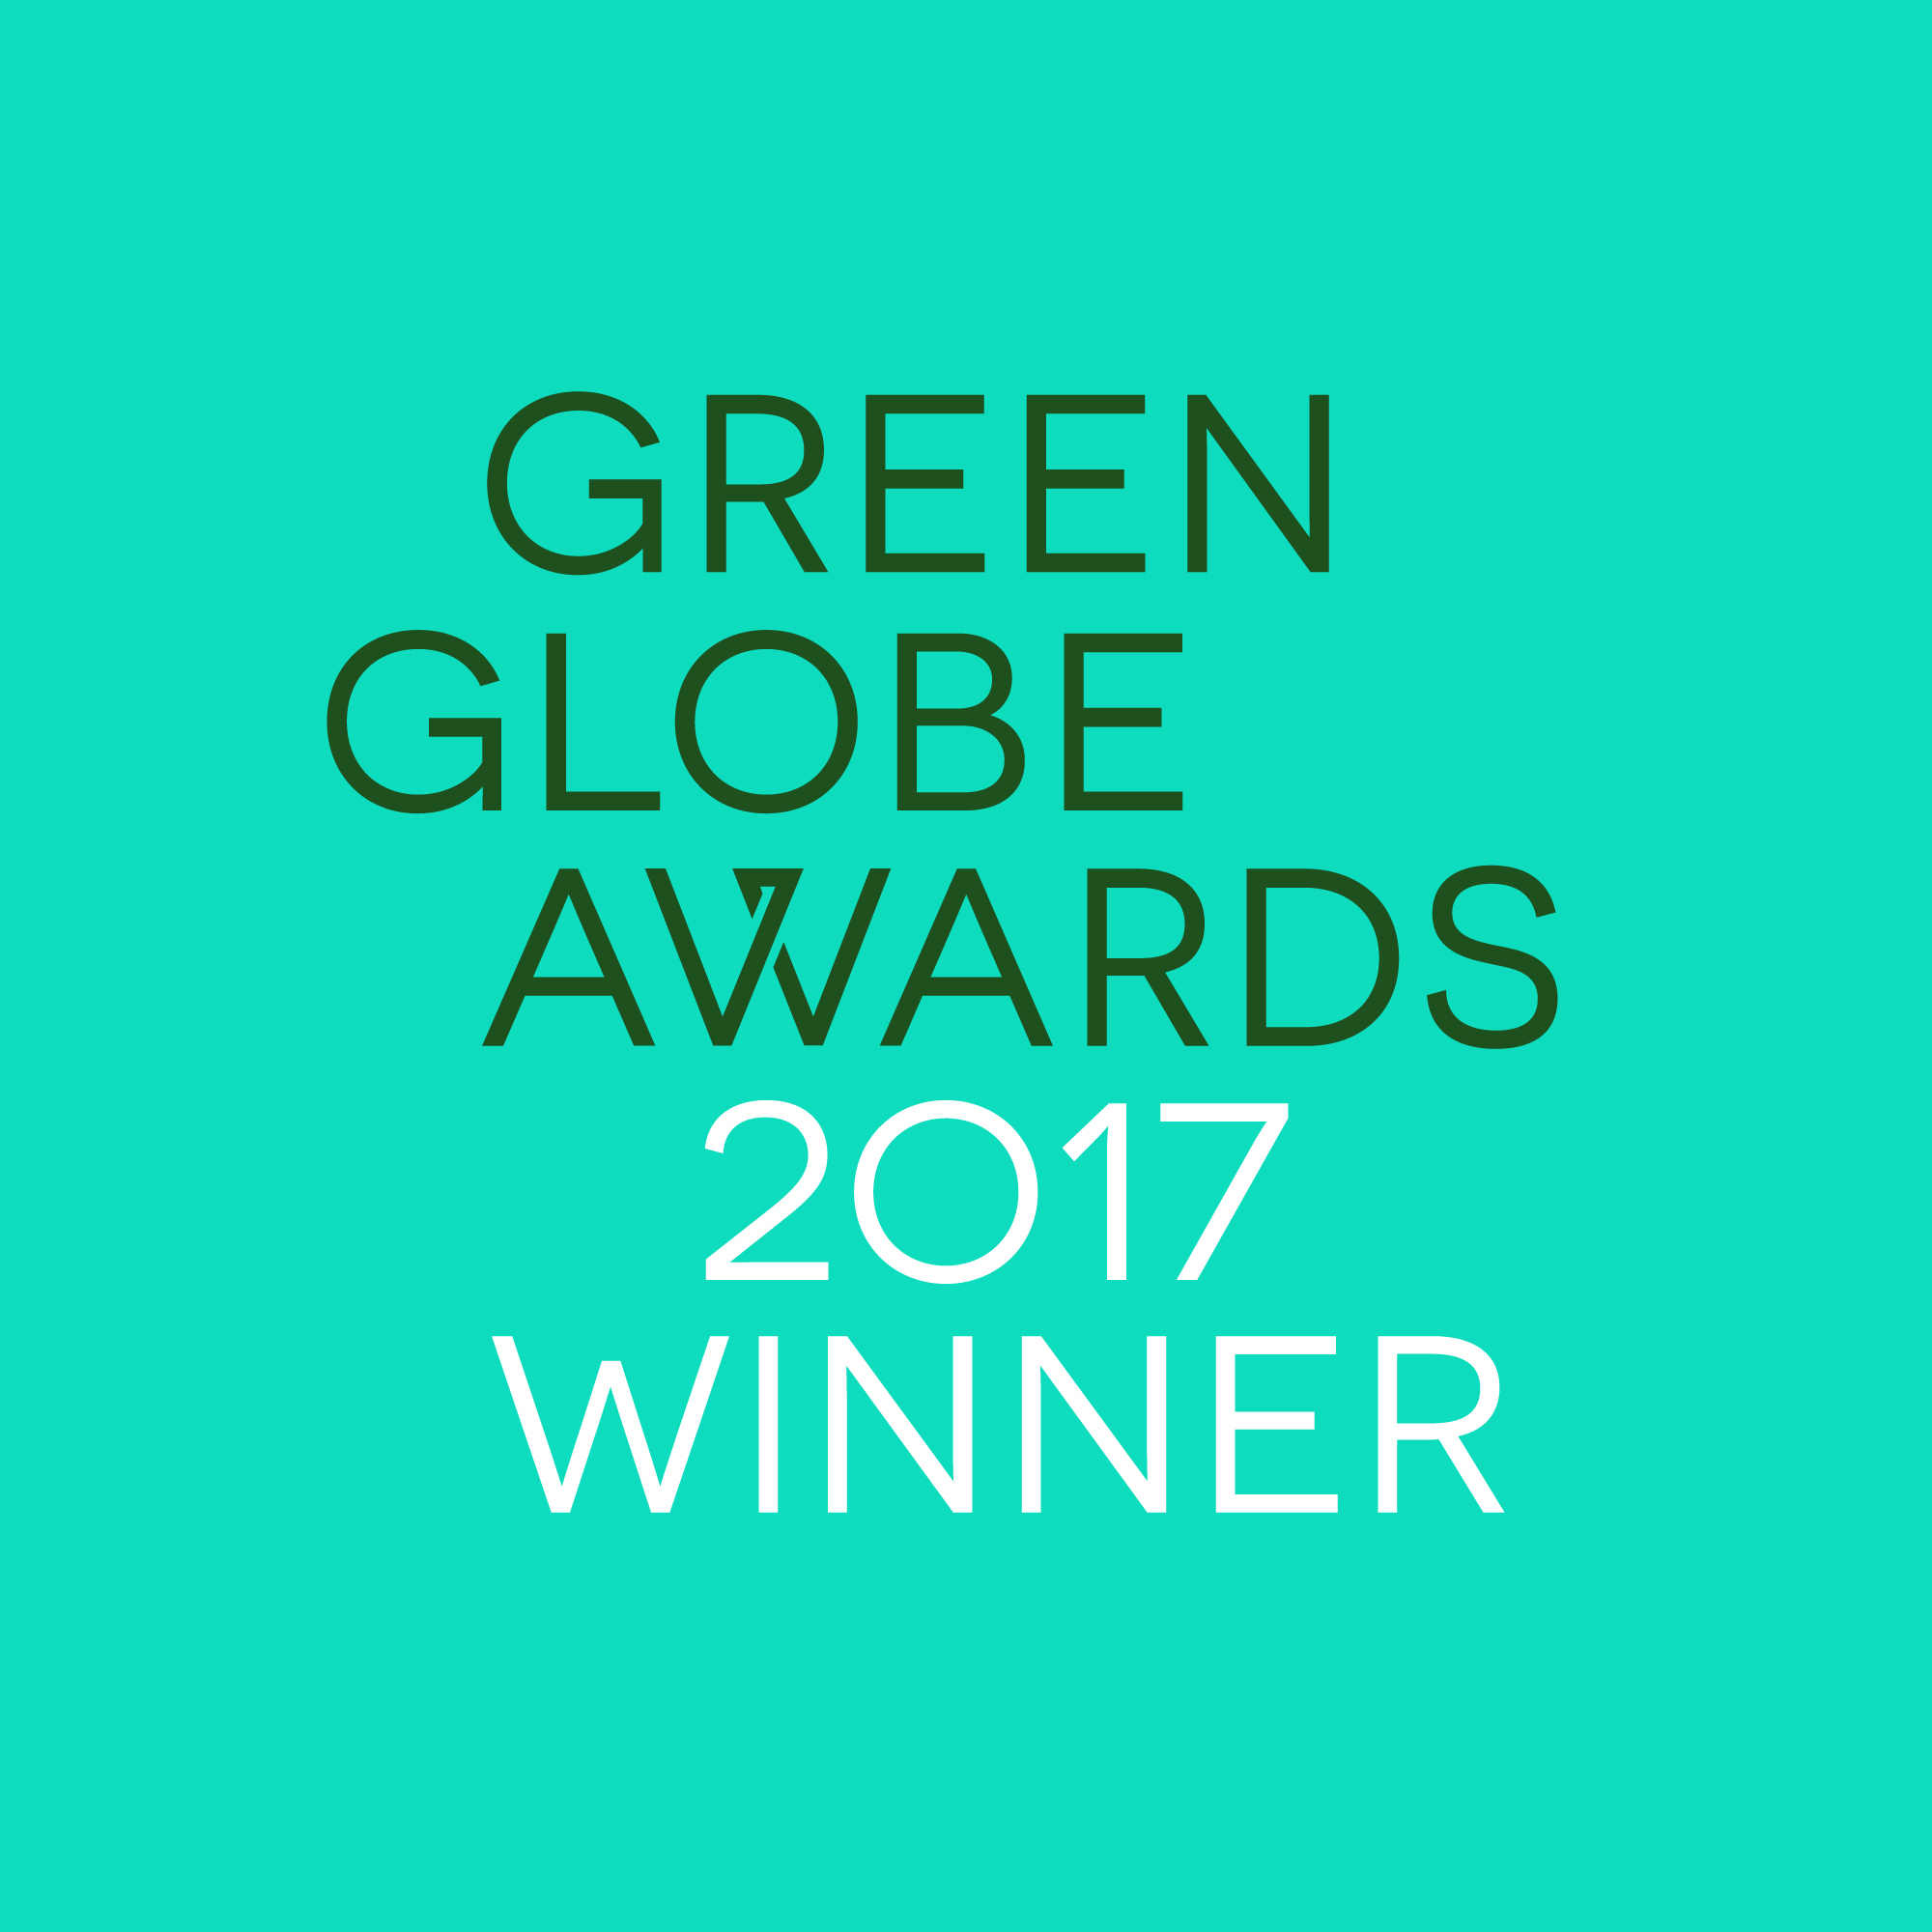 Green Glob Awards 2017 Winner